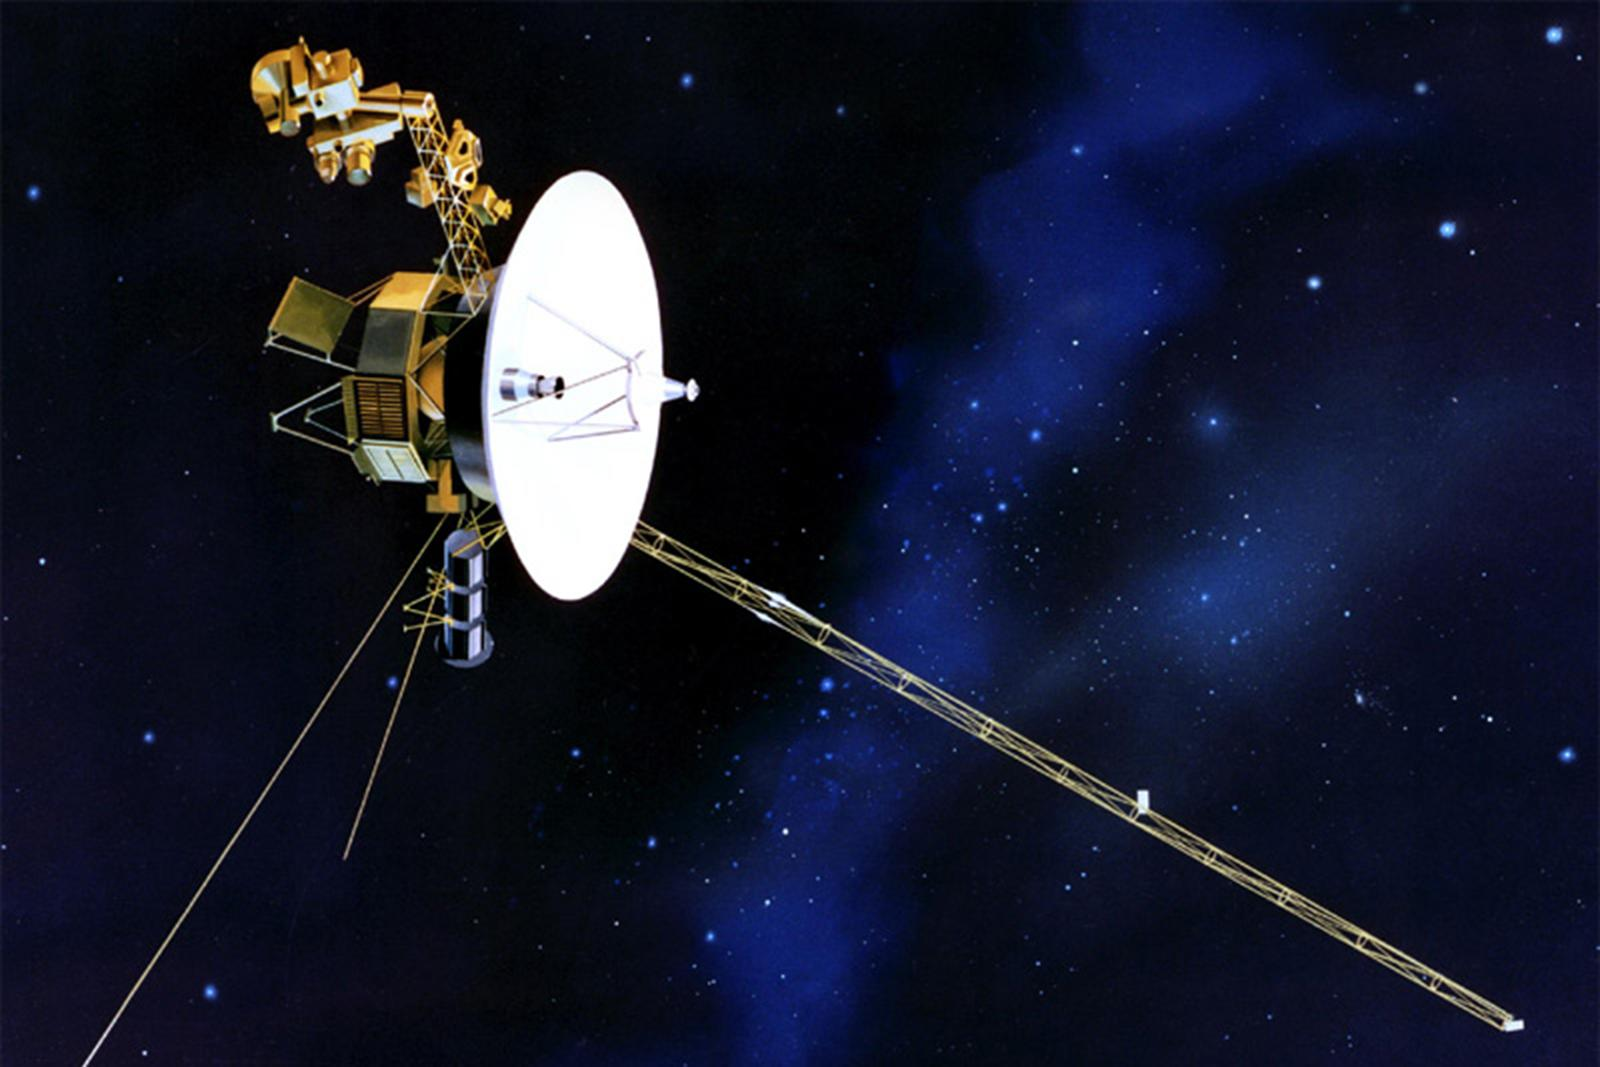 Voyager probes detect a new form of cosmic ray burst from the Sun | Engadget